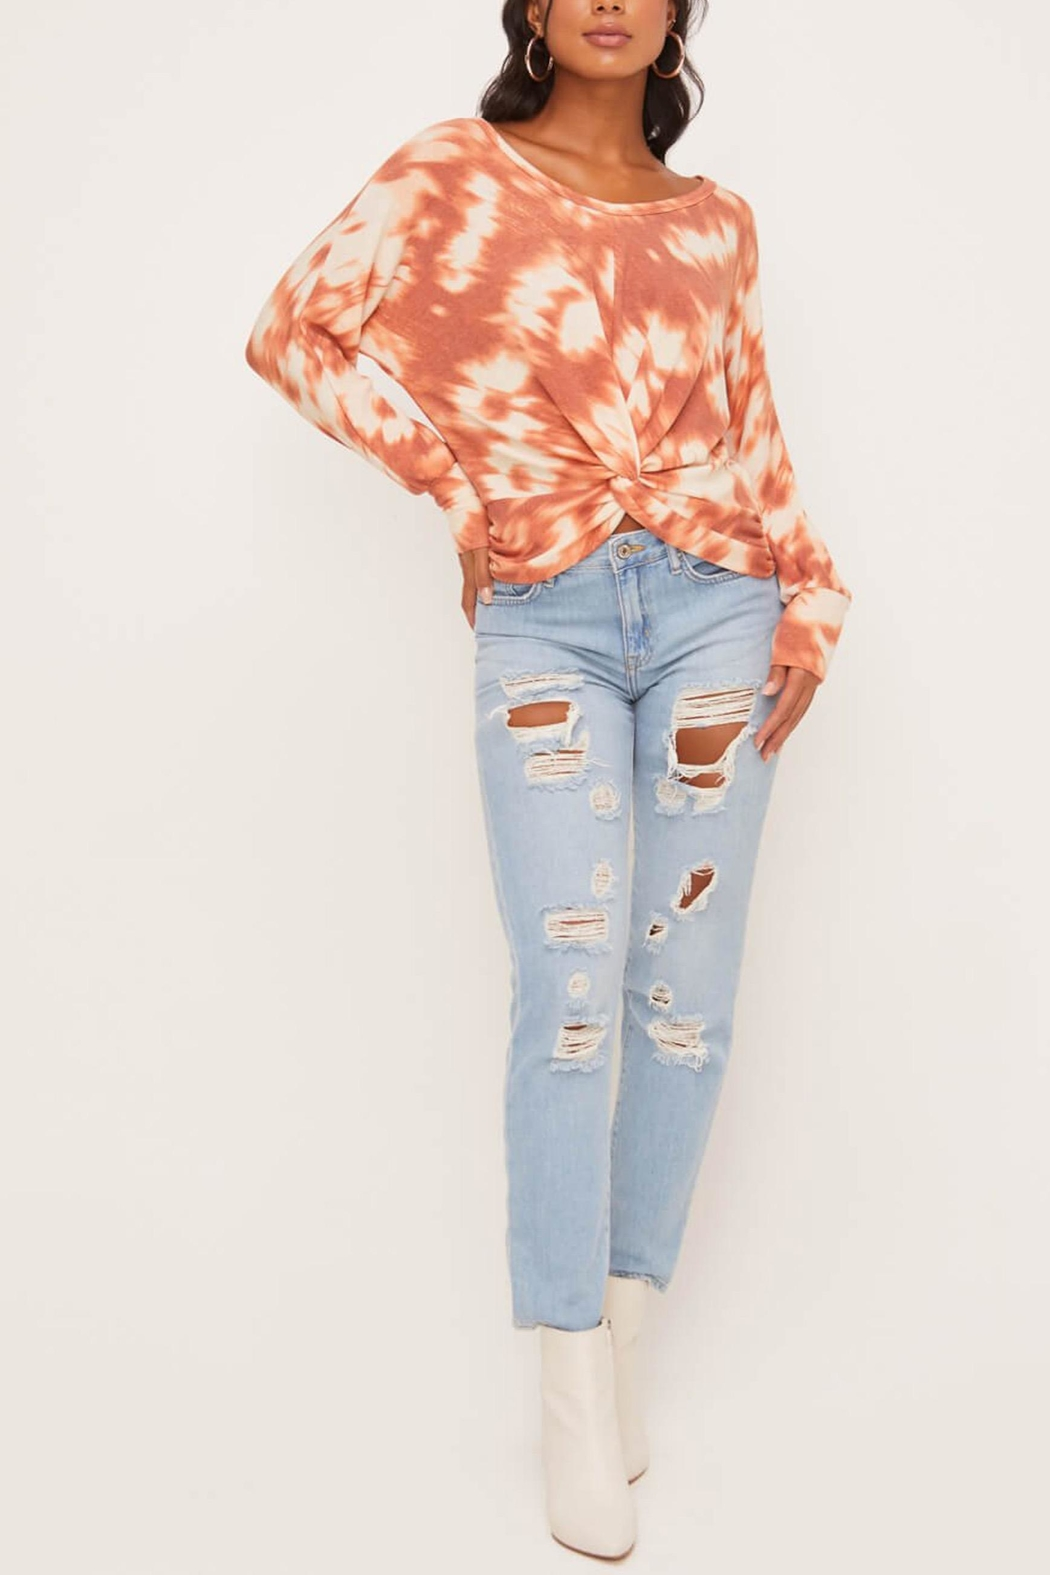 Lush Clothing  Tie-Dye Twist Front Top - Side Cropped Image